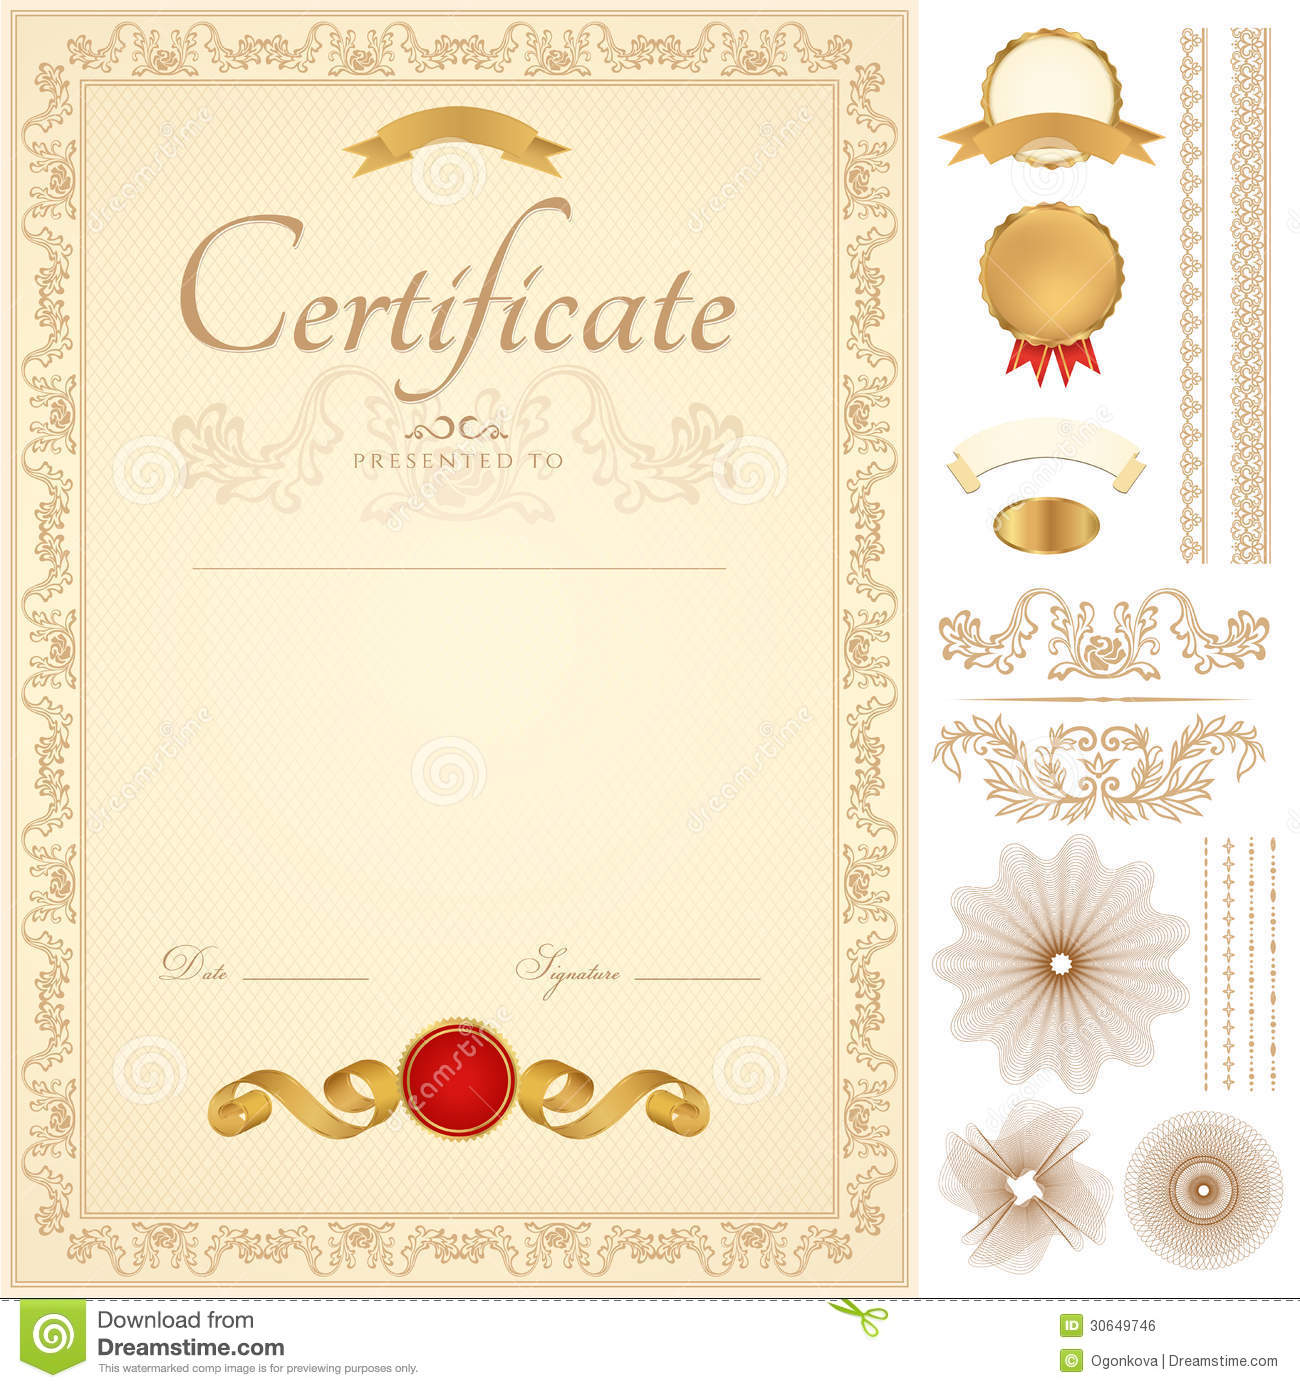 Certificate Diploma Background Golden Border Stock Vector